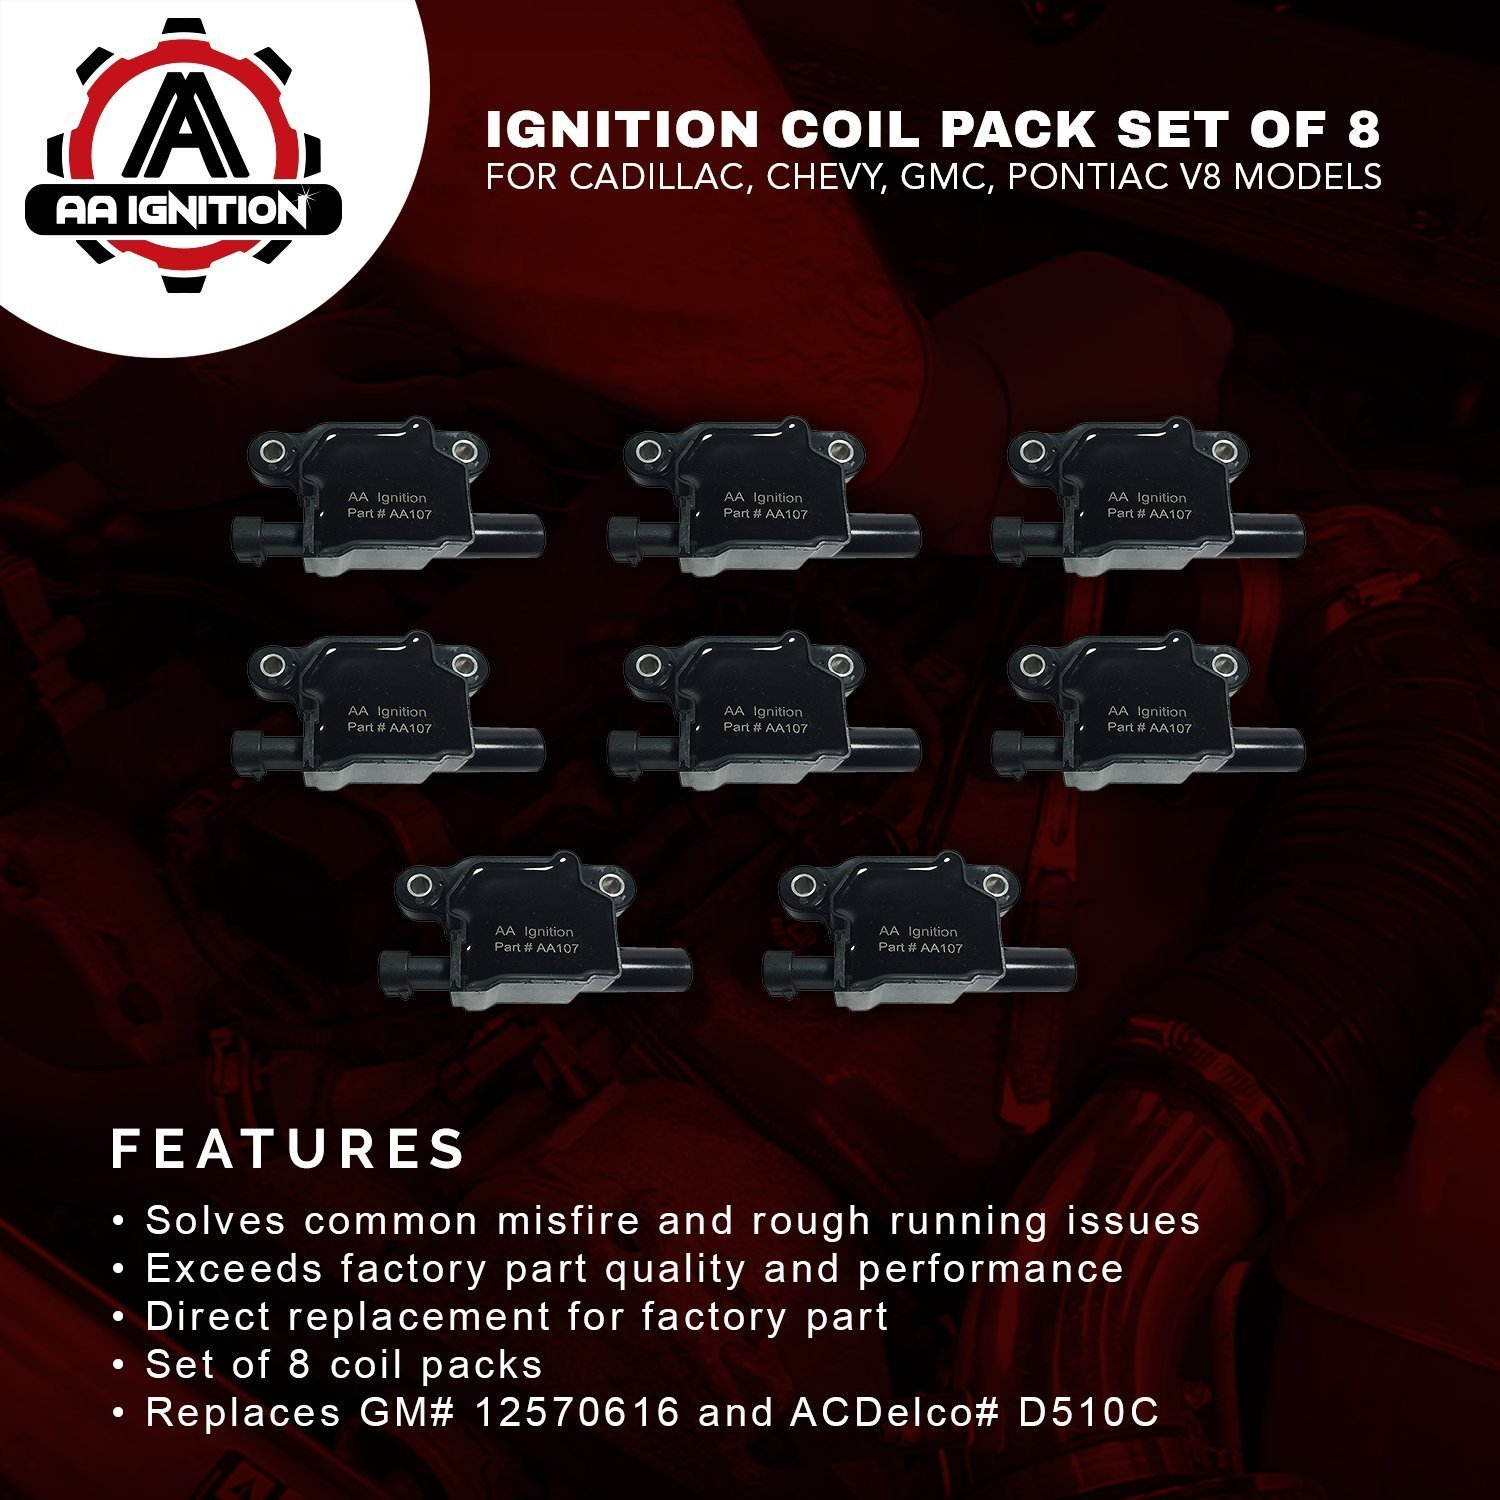 Ignition Coil Pack Set Of 8 Replaces Gm 12570616 Painless Wiring Harness 2005 Envoy Acdelco D510c Cadillac Chevrolet Gmc Pontiac 53l 60l V8 G8 Grand Prix H3 Tahoe